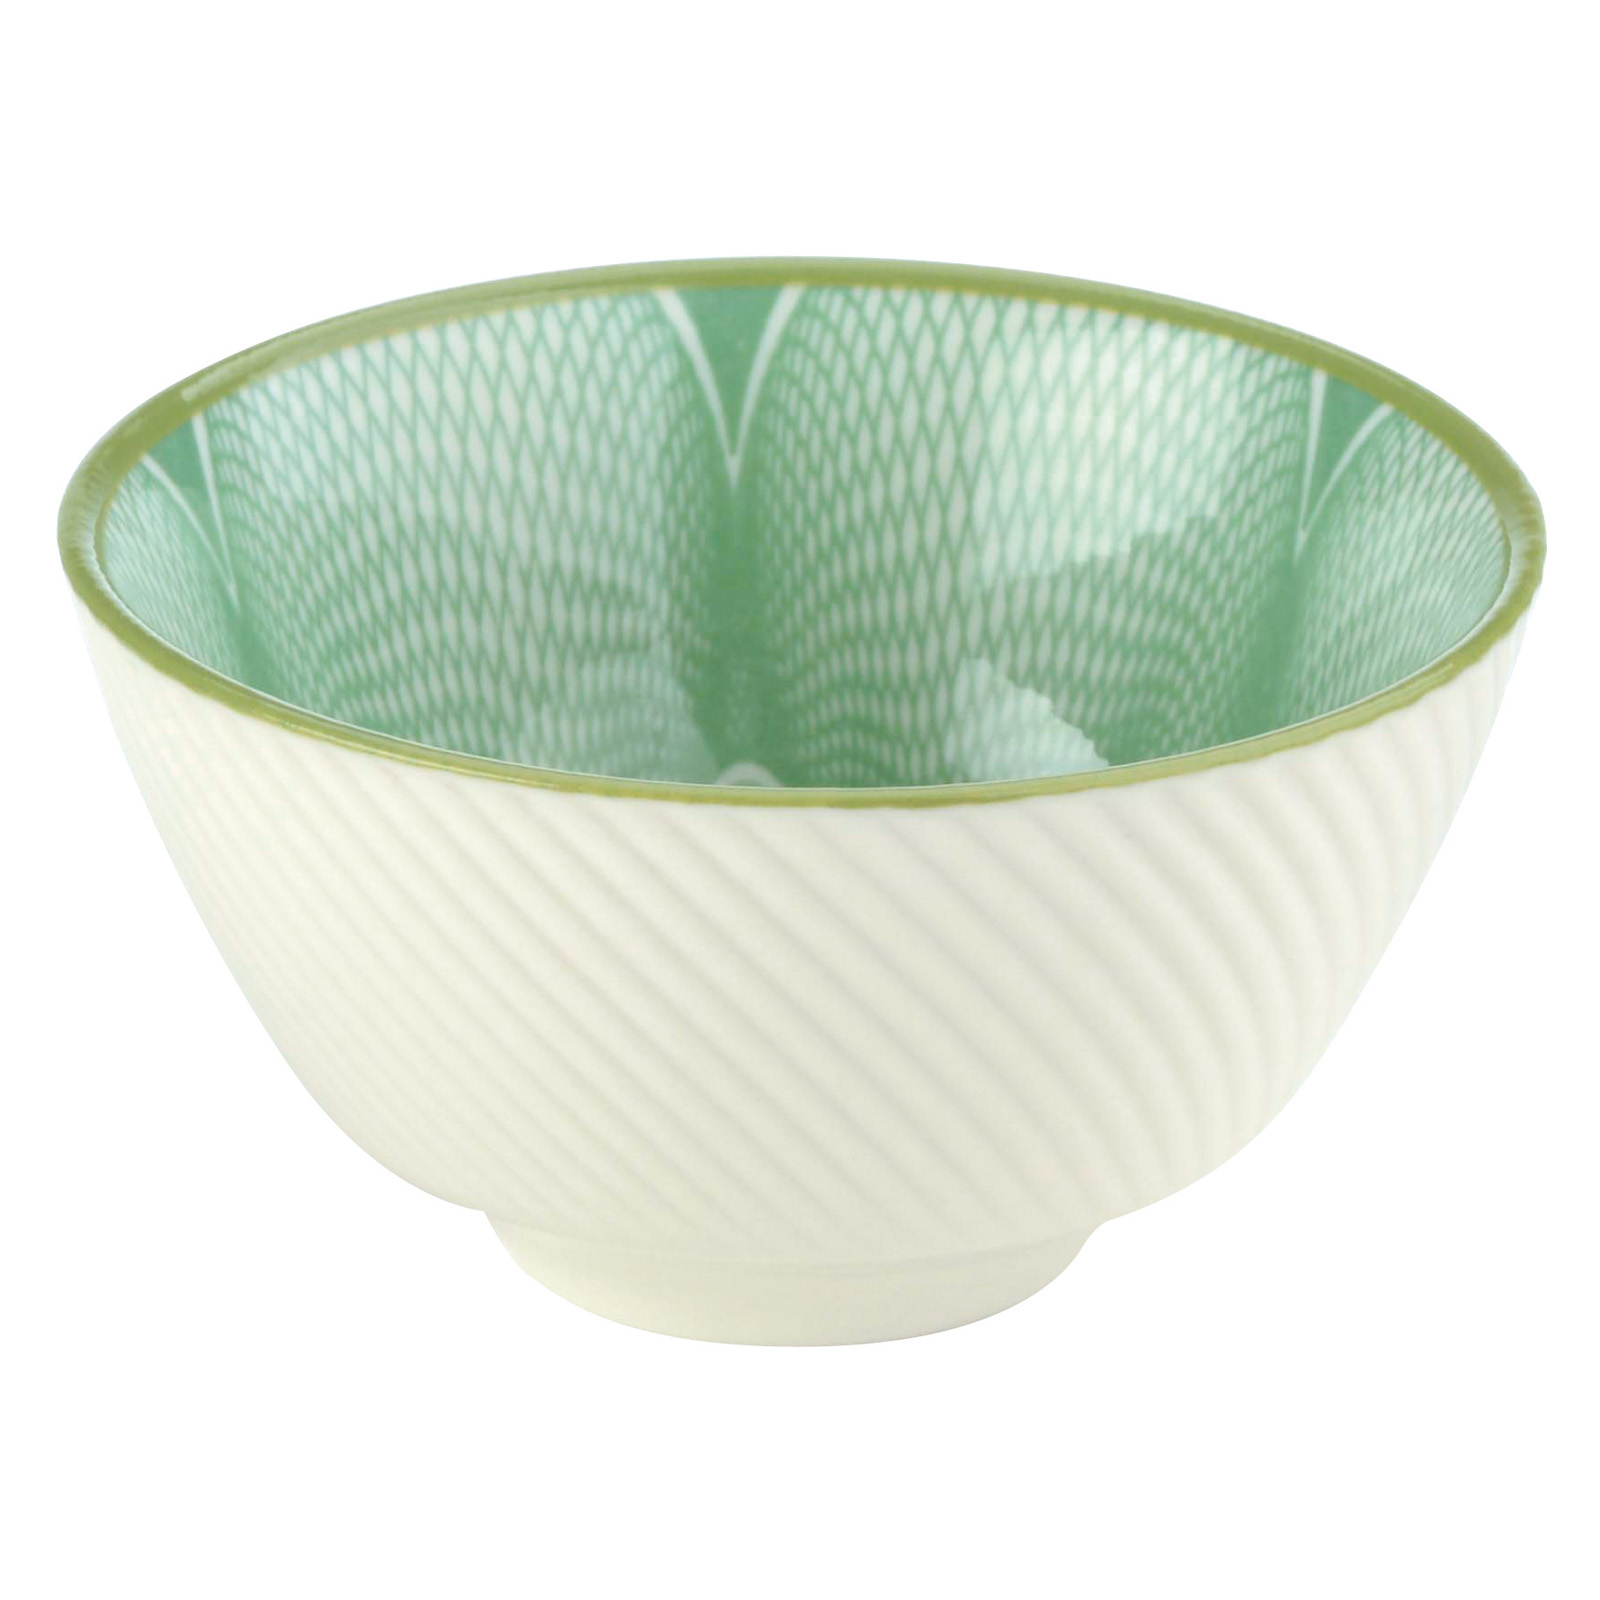 Set of 12 Spyro Tea Bowls Green by BIA